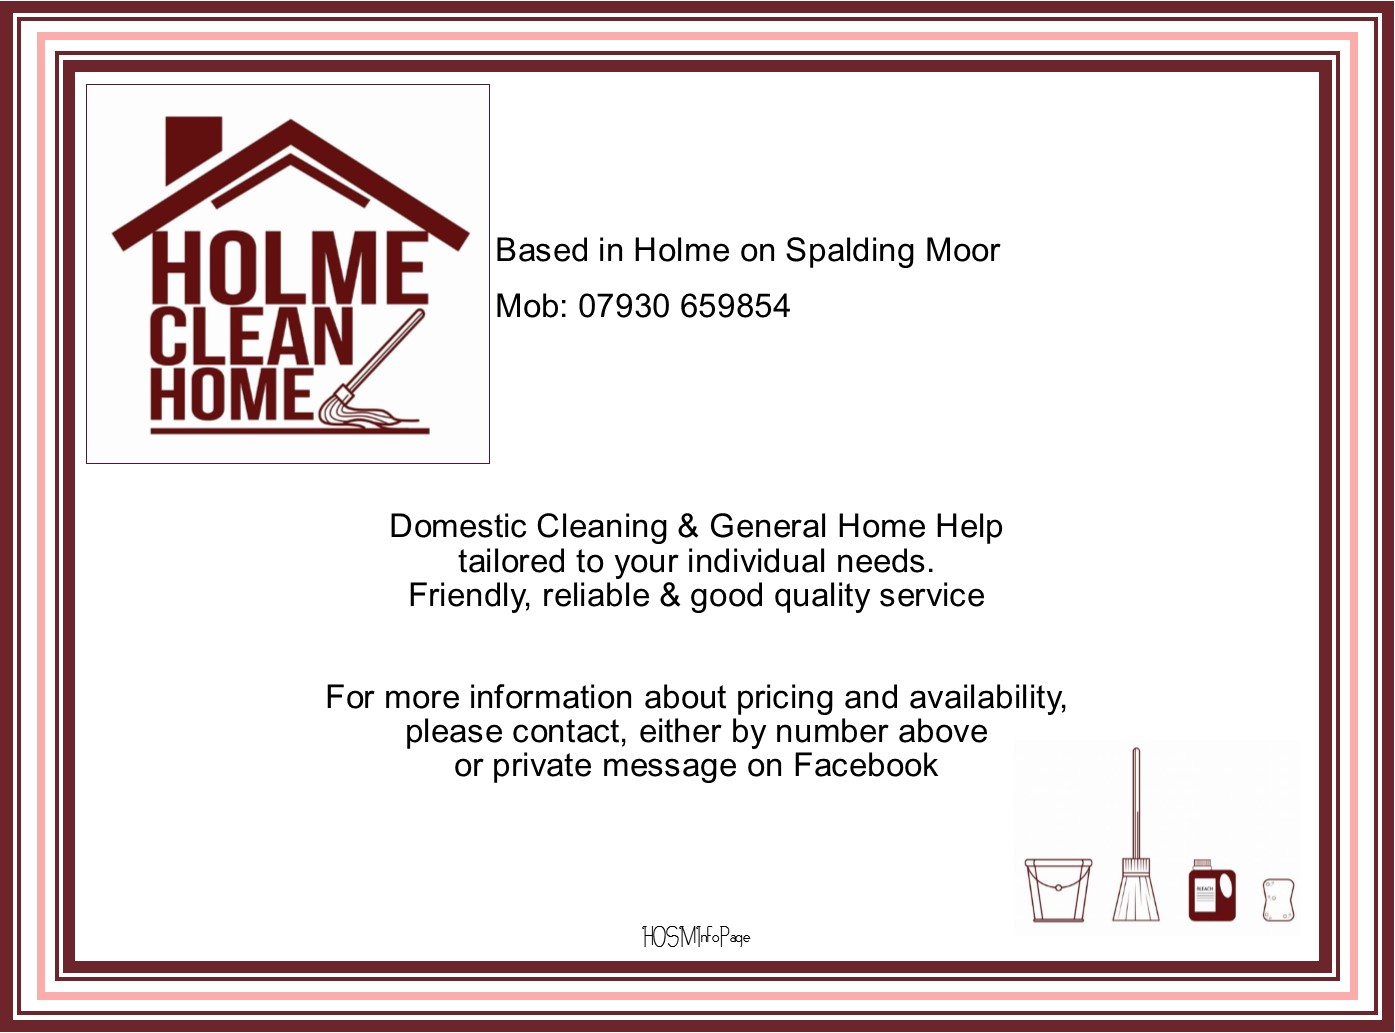 Holme Clean Home